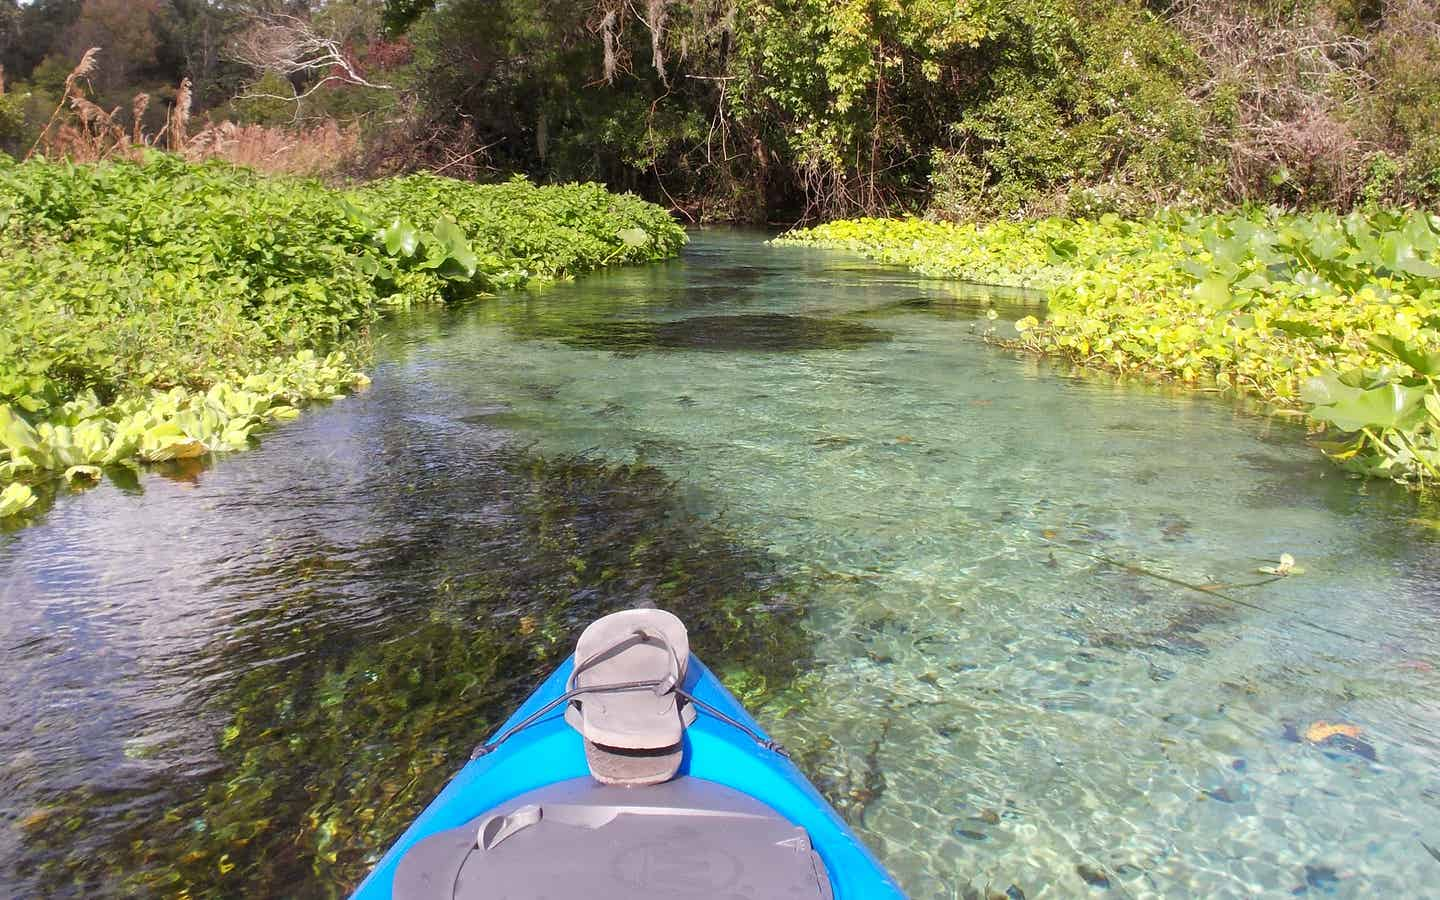 Kayak in a river surrounded by plant life